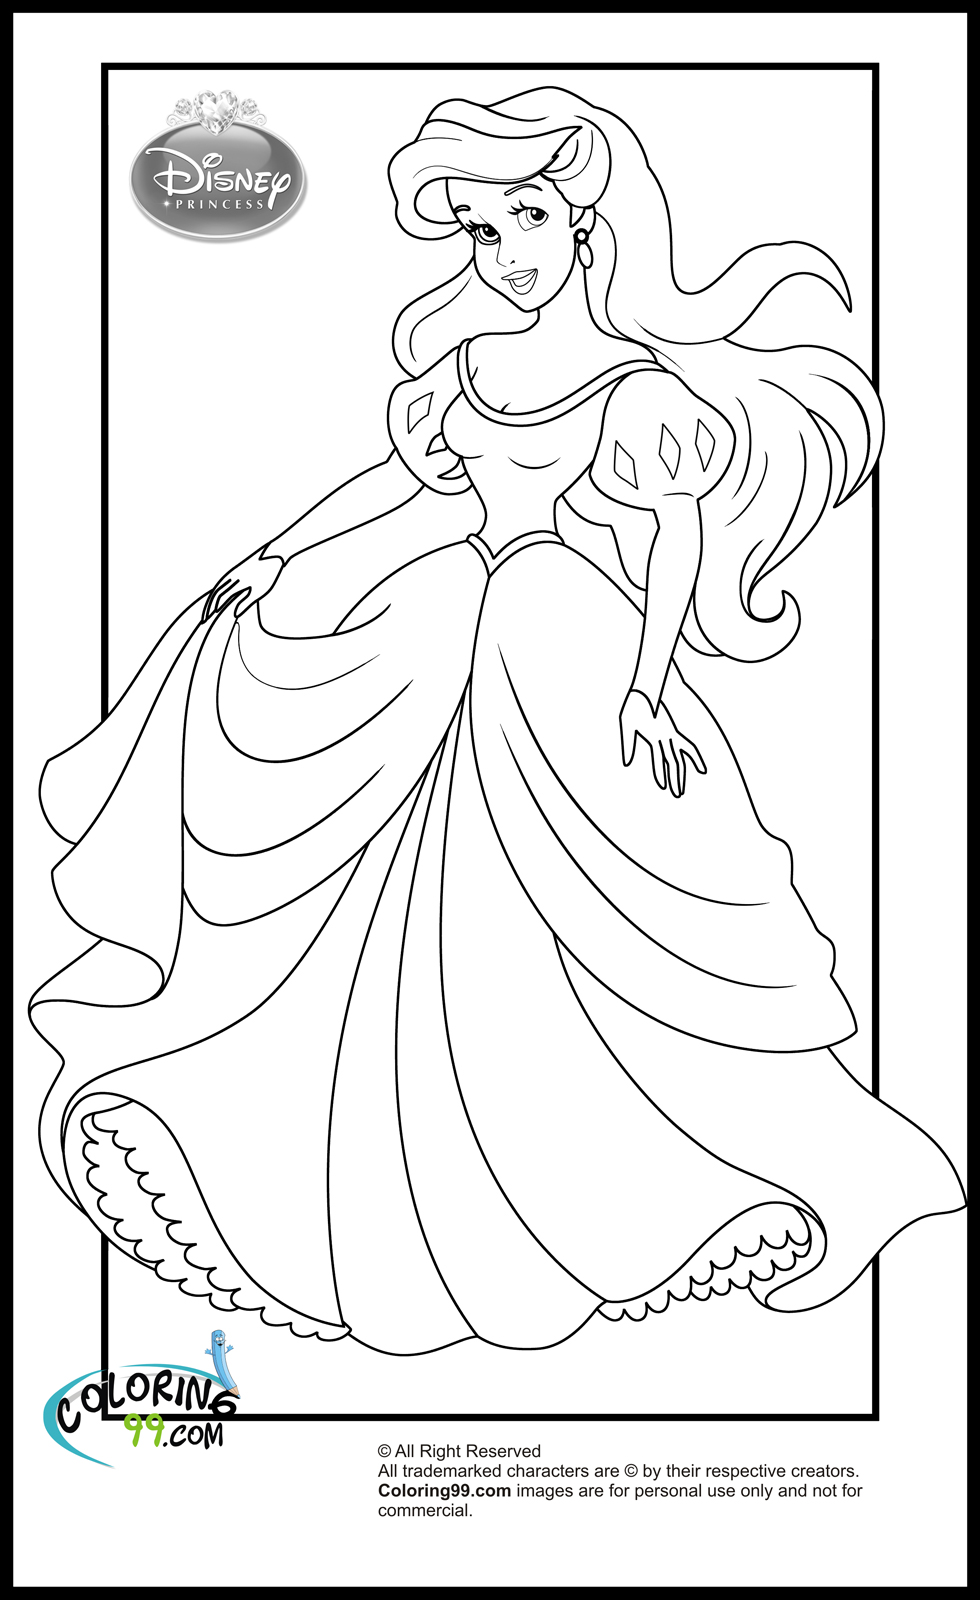 Disney Princess Coloring Pages Minister Coloring Princess Images To Color Free Coloring Pages